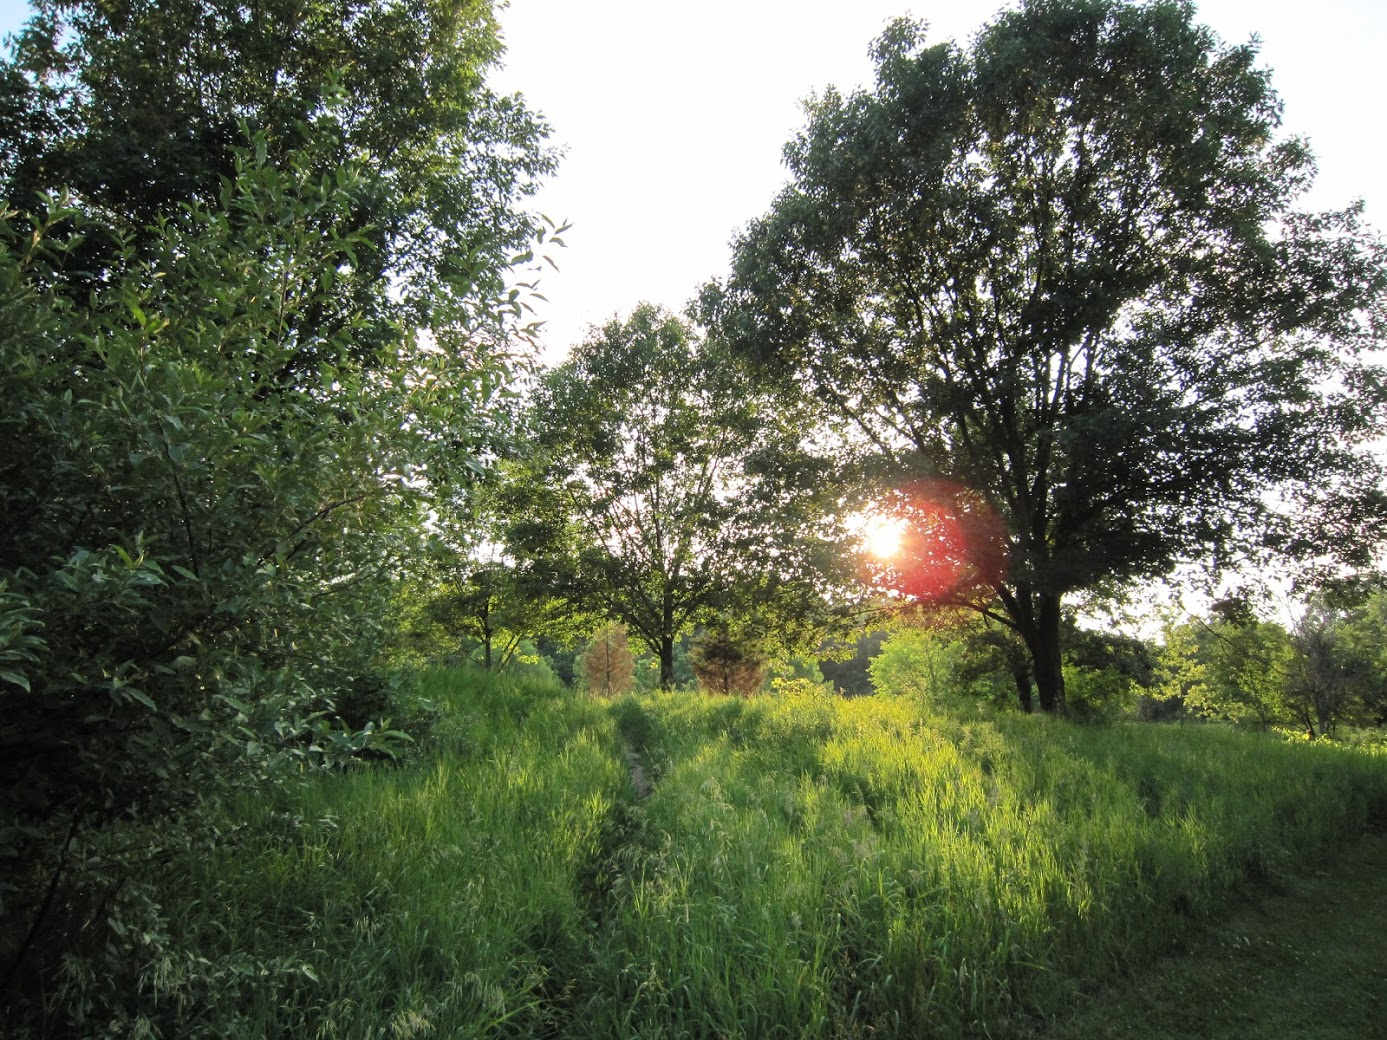 LCG photo of a meadow